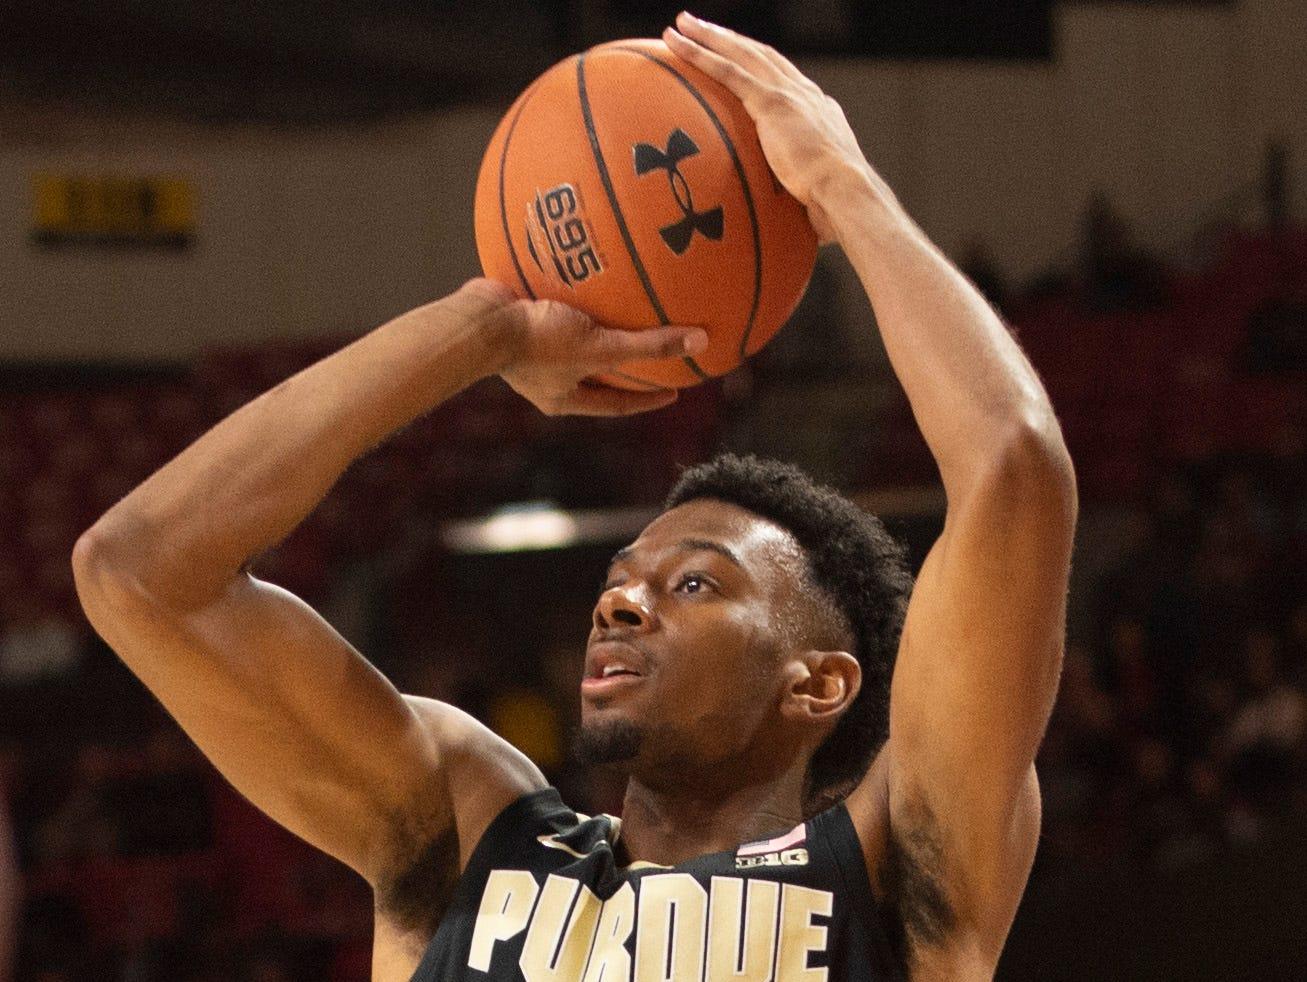 Feb 12, 2019; College Park, MD, USA; Purdue Boilermakers forward Aaron Wheeler (1) takes three point shot during the first half against the Maryland Terrapins at XFINITY Center. Mandatory Credit: Tommy Gilligan-USA TODAY Sports